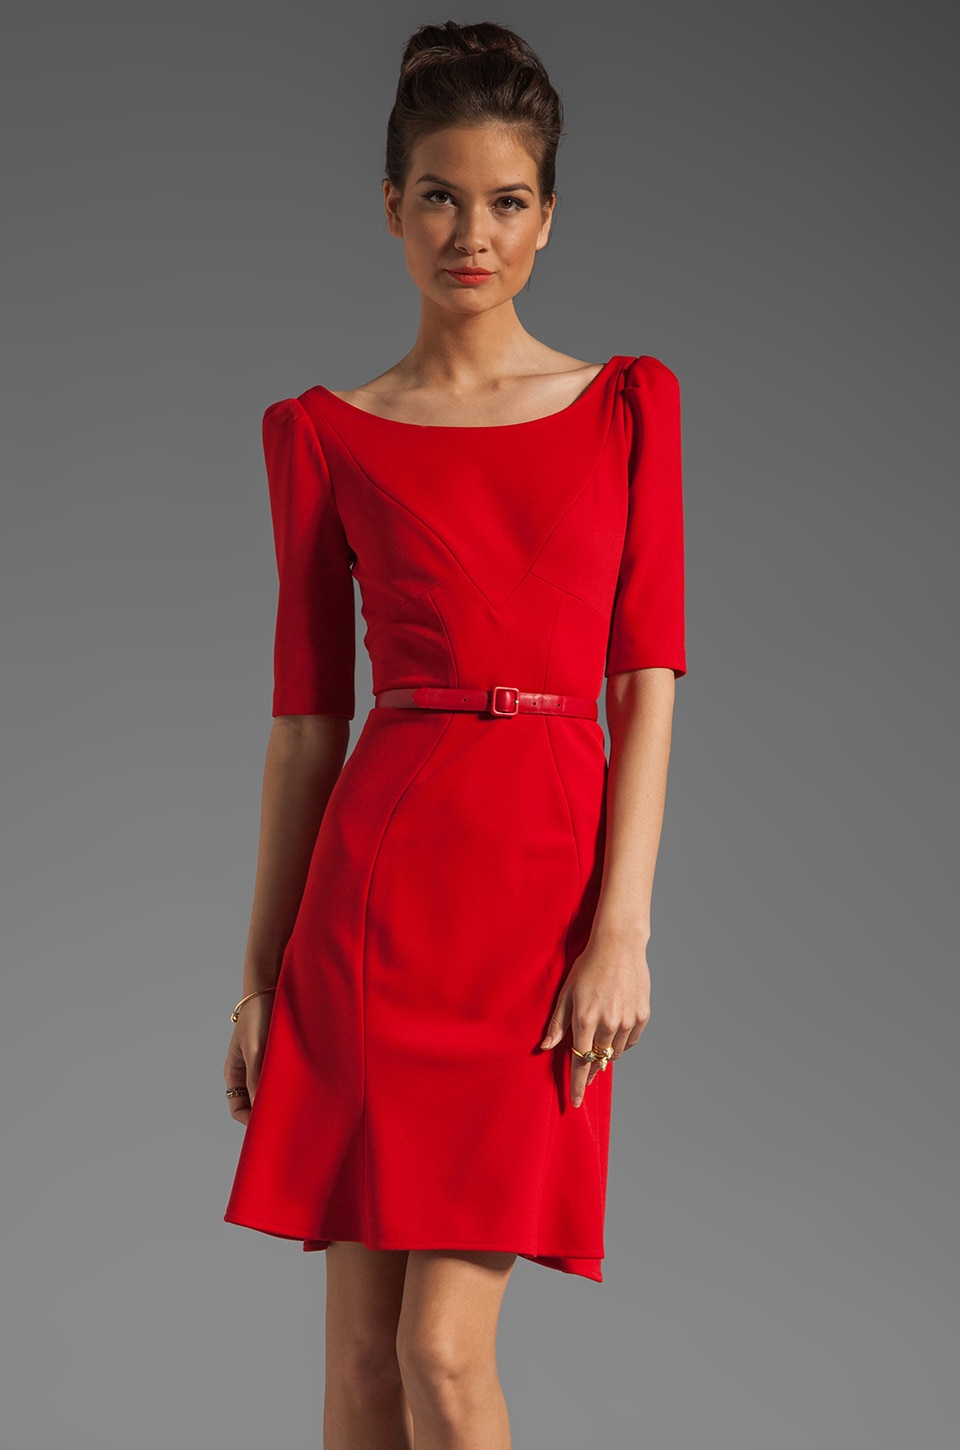 Z Spoke by Zac Posen 3/4 Sleeve V Neck Dress in Red Carpet